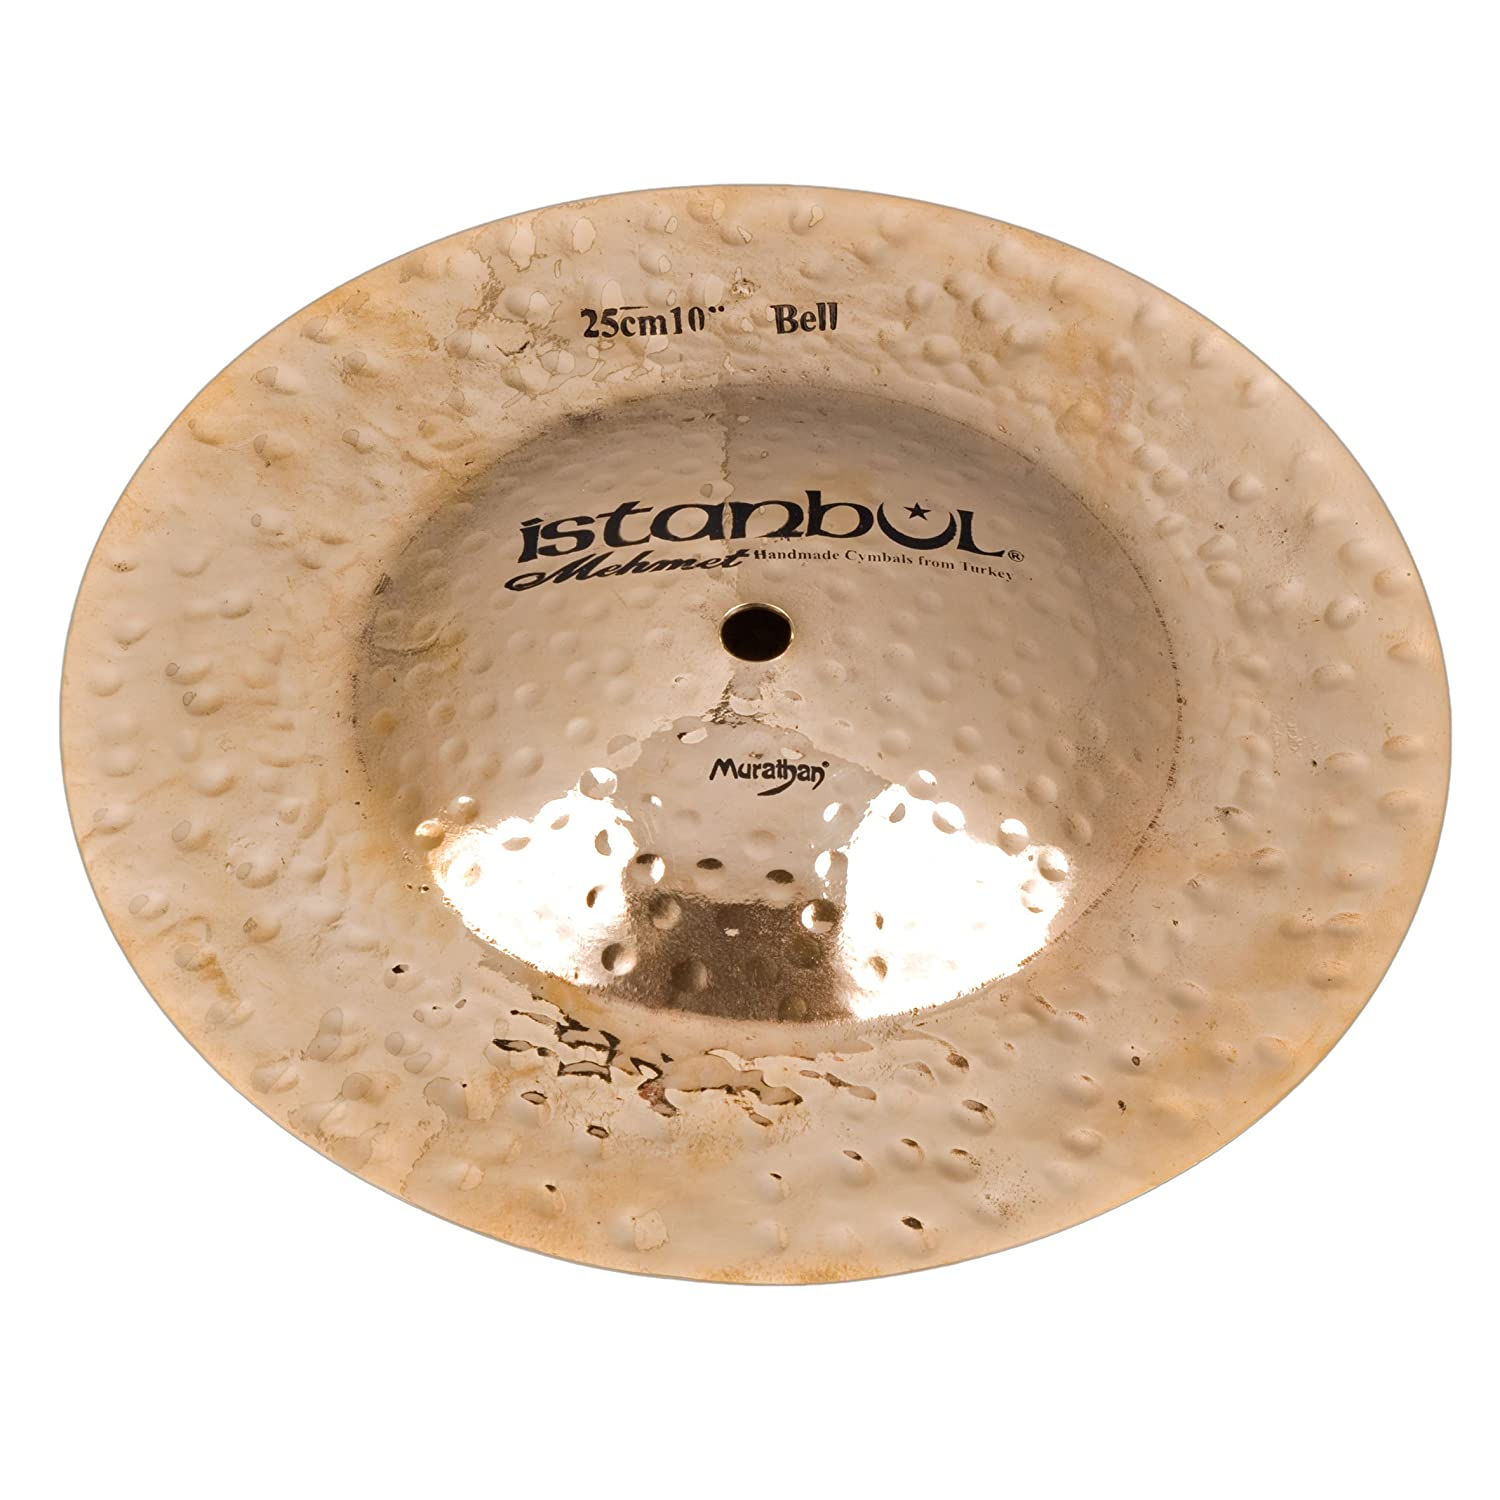 Istanbul Mehmet Cymbals Modern Series Murathan Bell Effect Cymbals RM-BL (9